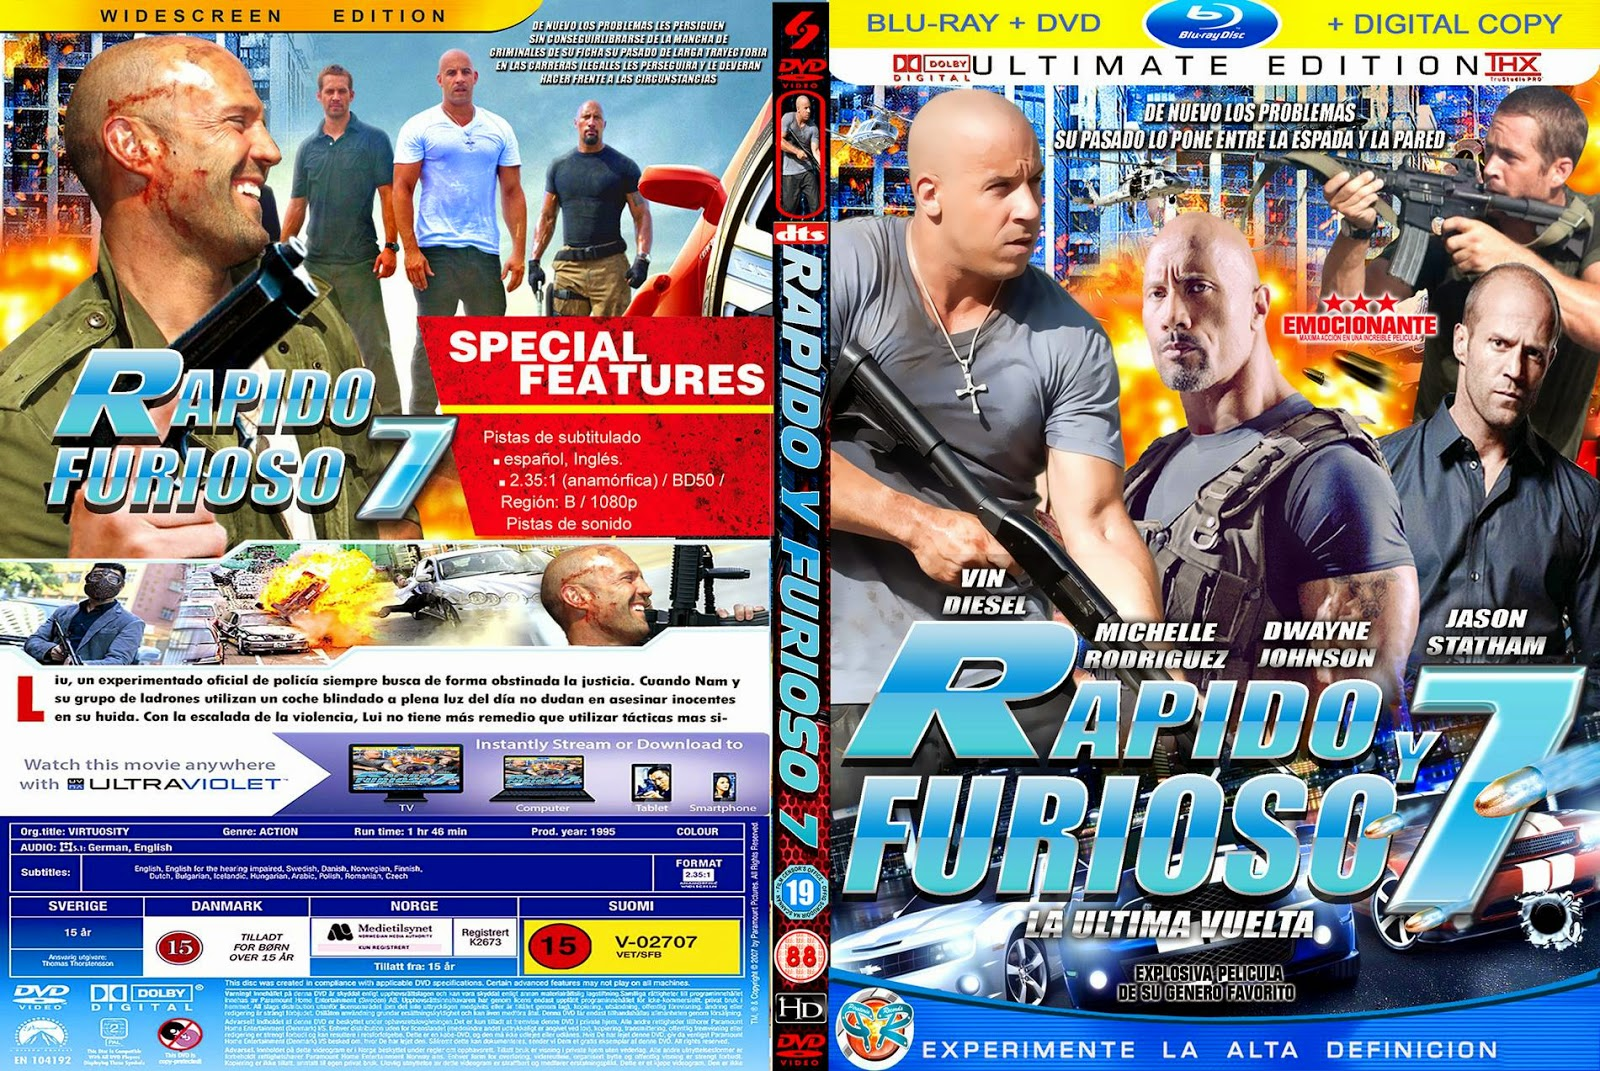 cover fast furious 7 dvd. Black Bedroom Furniture Sets. Home Design Ideas